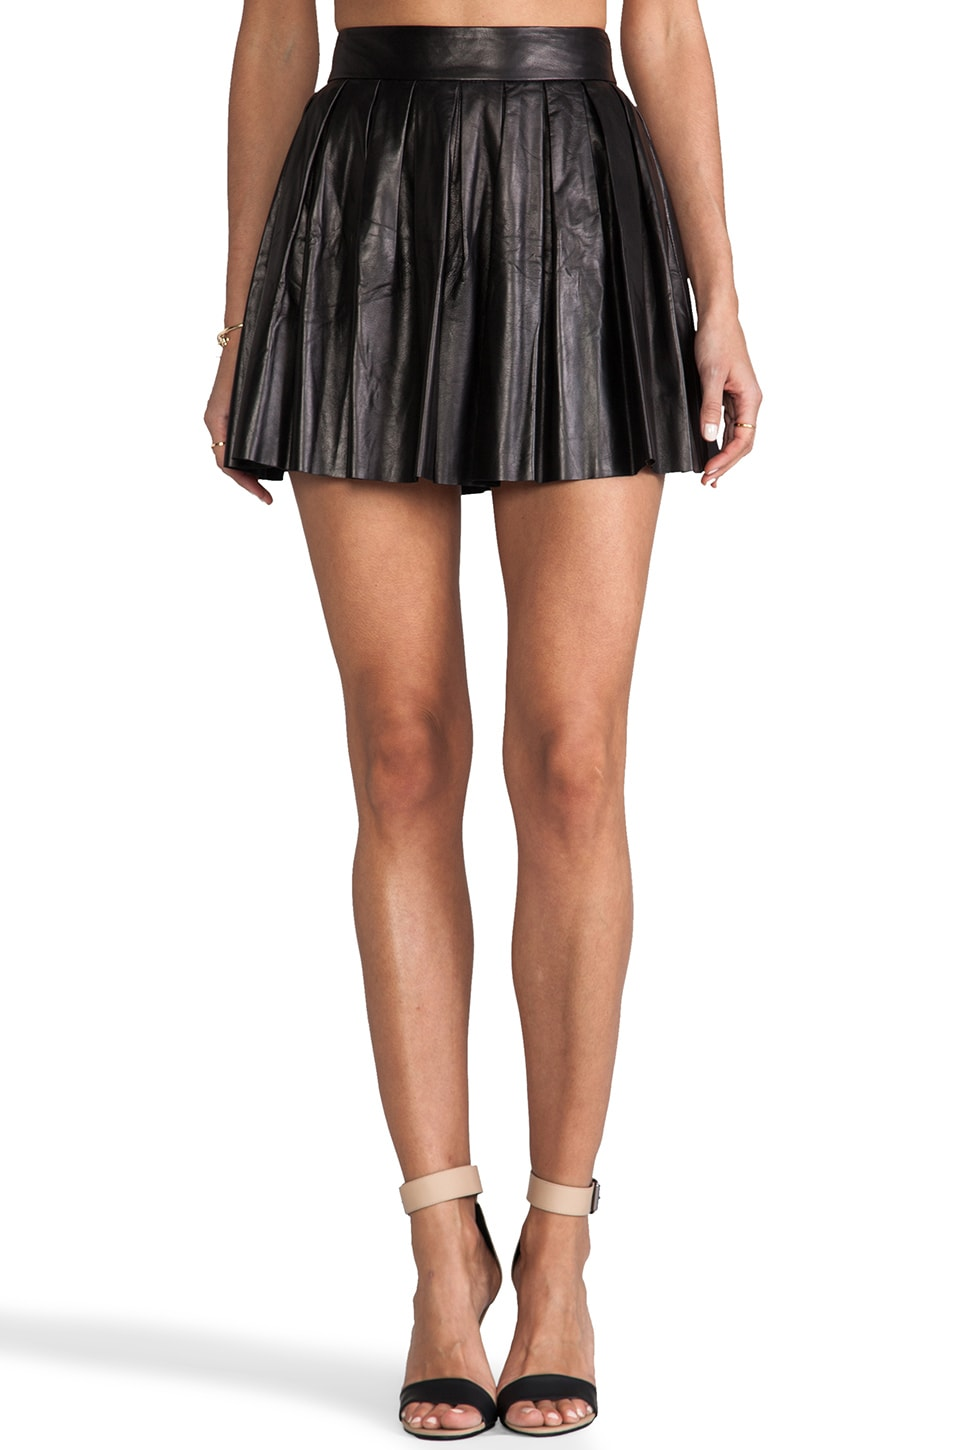 Alice + Olivia Dara Box Pleat Leather Skirt in Black